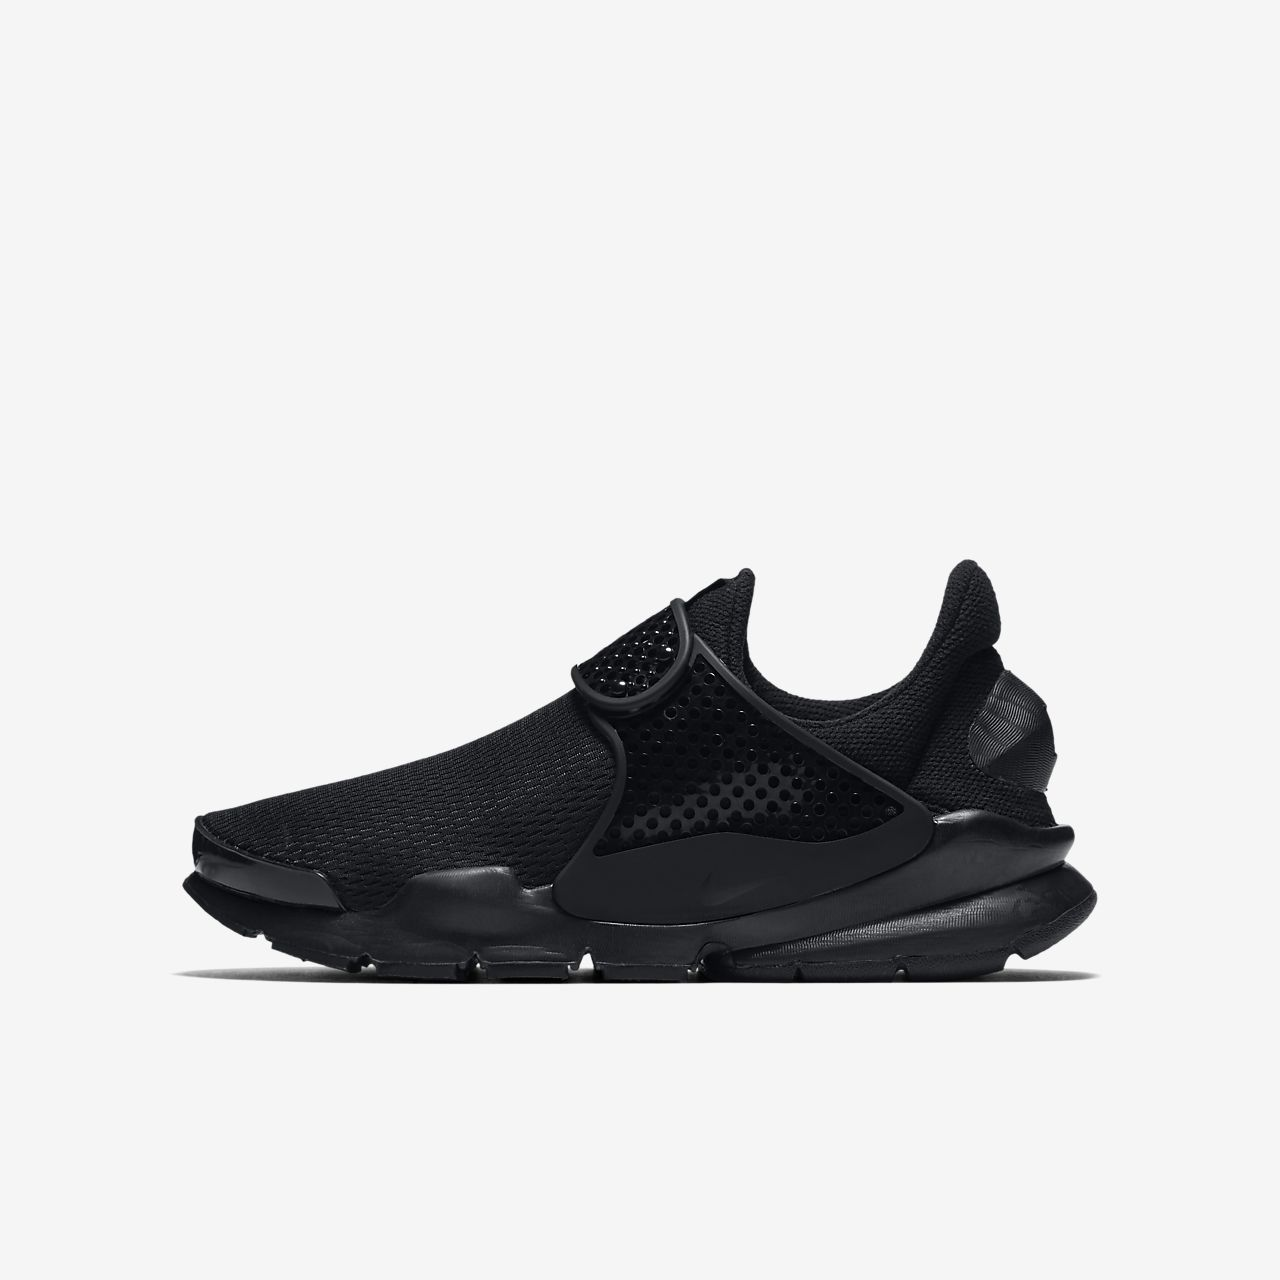 Low Resolution Nike Sock Dart Kinderschoen Nike Sock Dart Kinderschoen